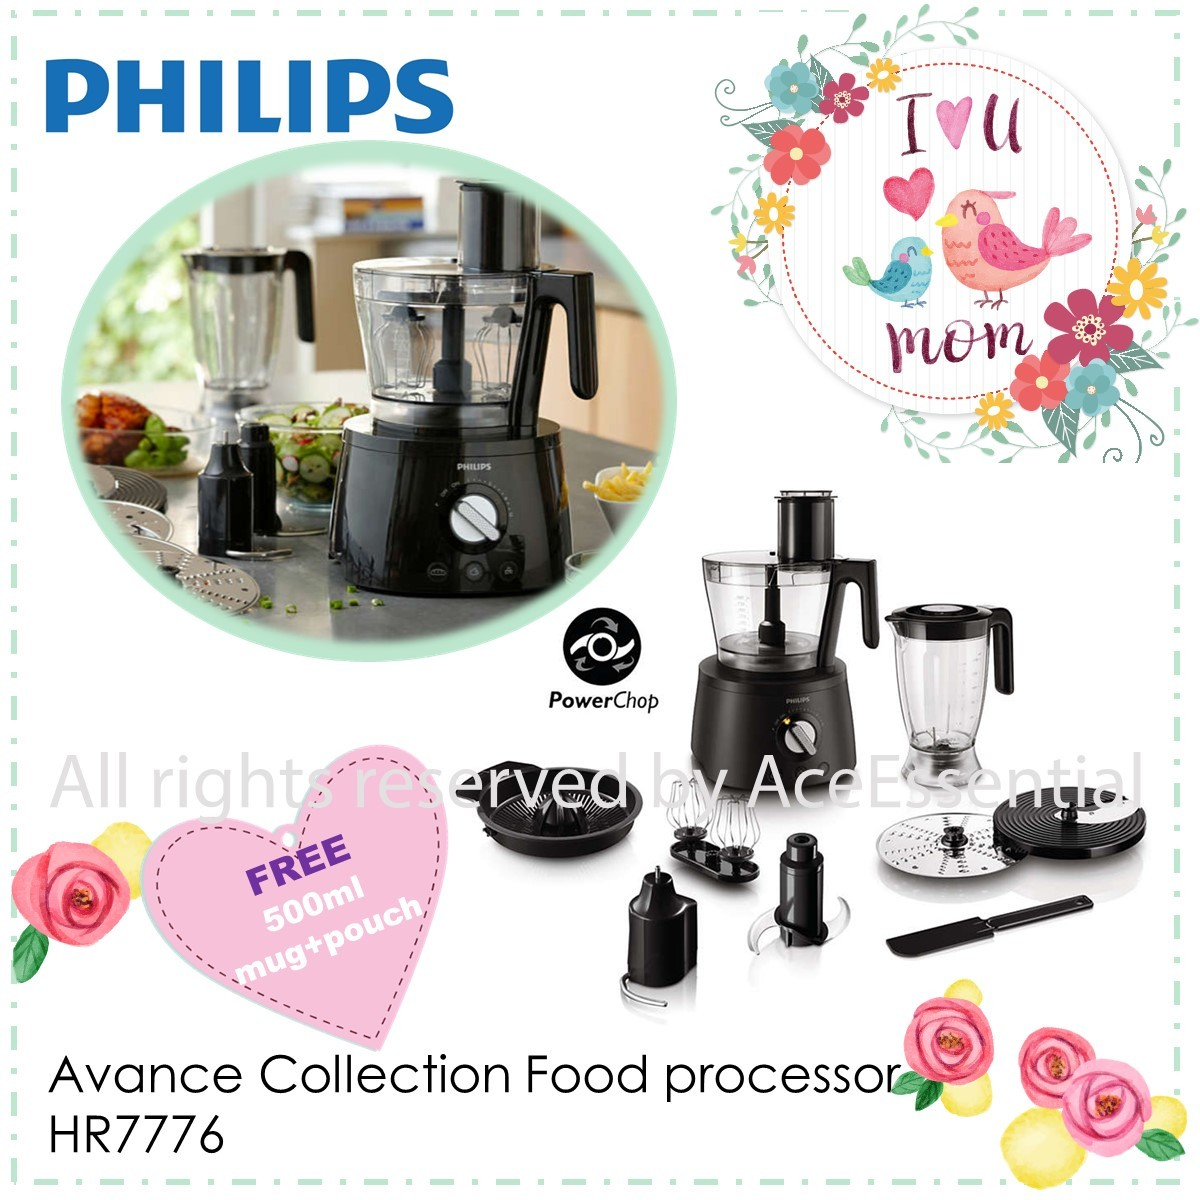 Kitchen Appliances Singapore Qoo10 Free Mug Pouch Cxb 2067 With Philips Avance Collection